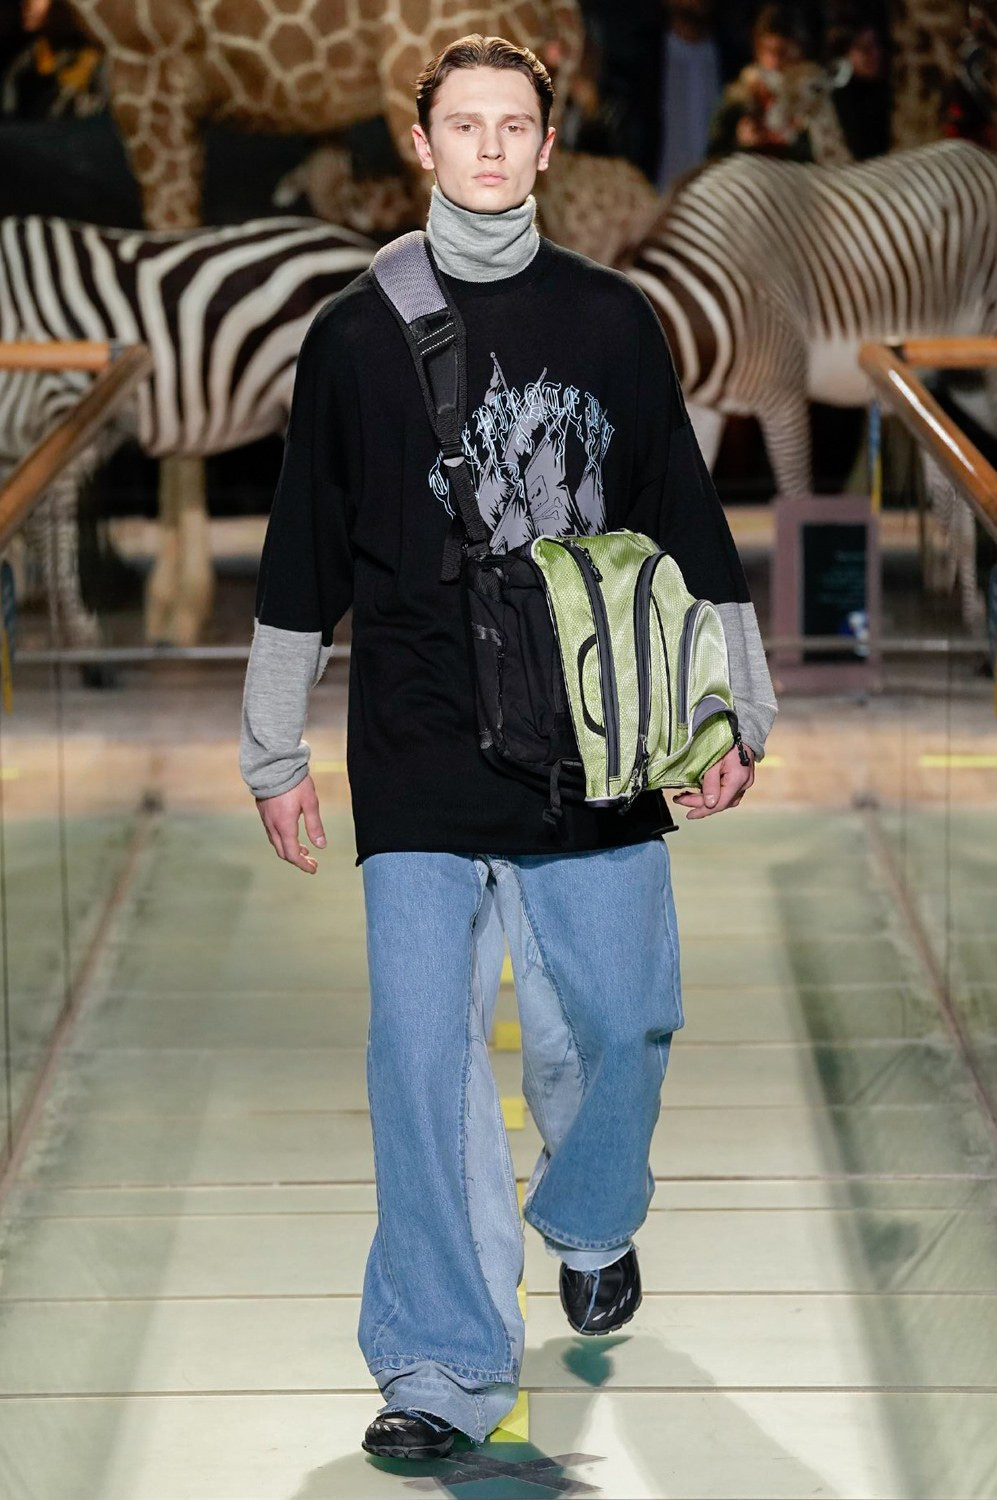 https---vetements-aw19-dtf-magazine.com-image-2019-01-vetements-fall-winter-2019-paris-fashion-week-29